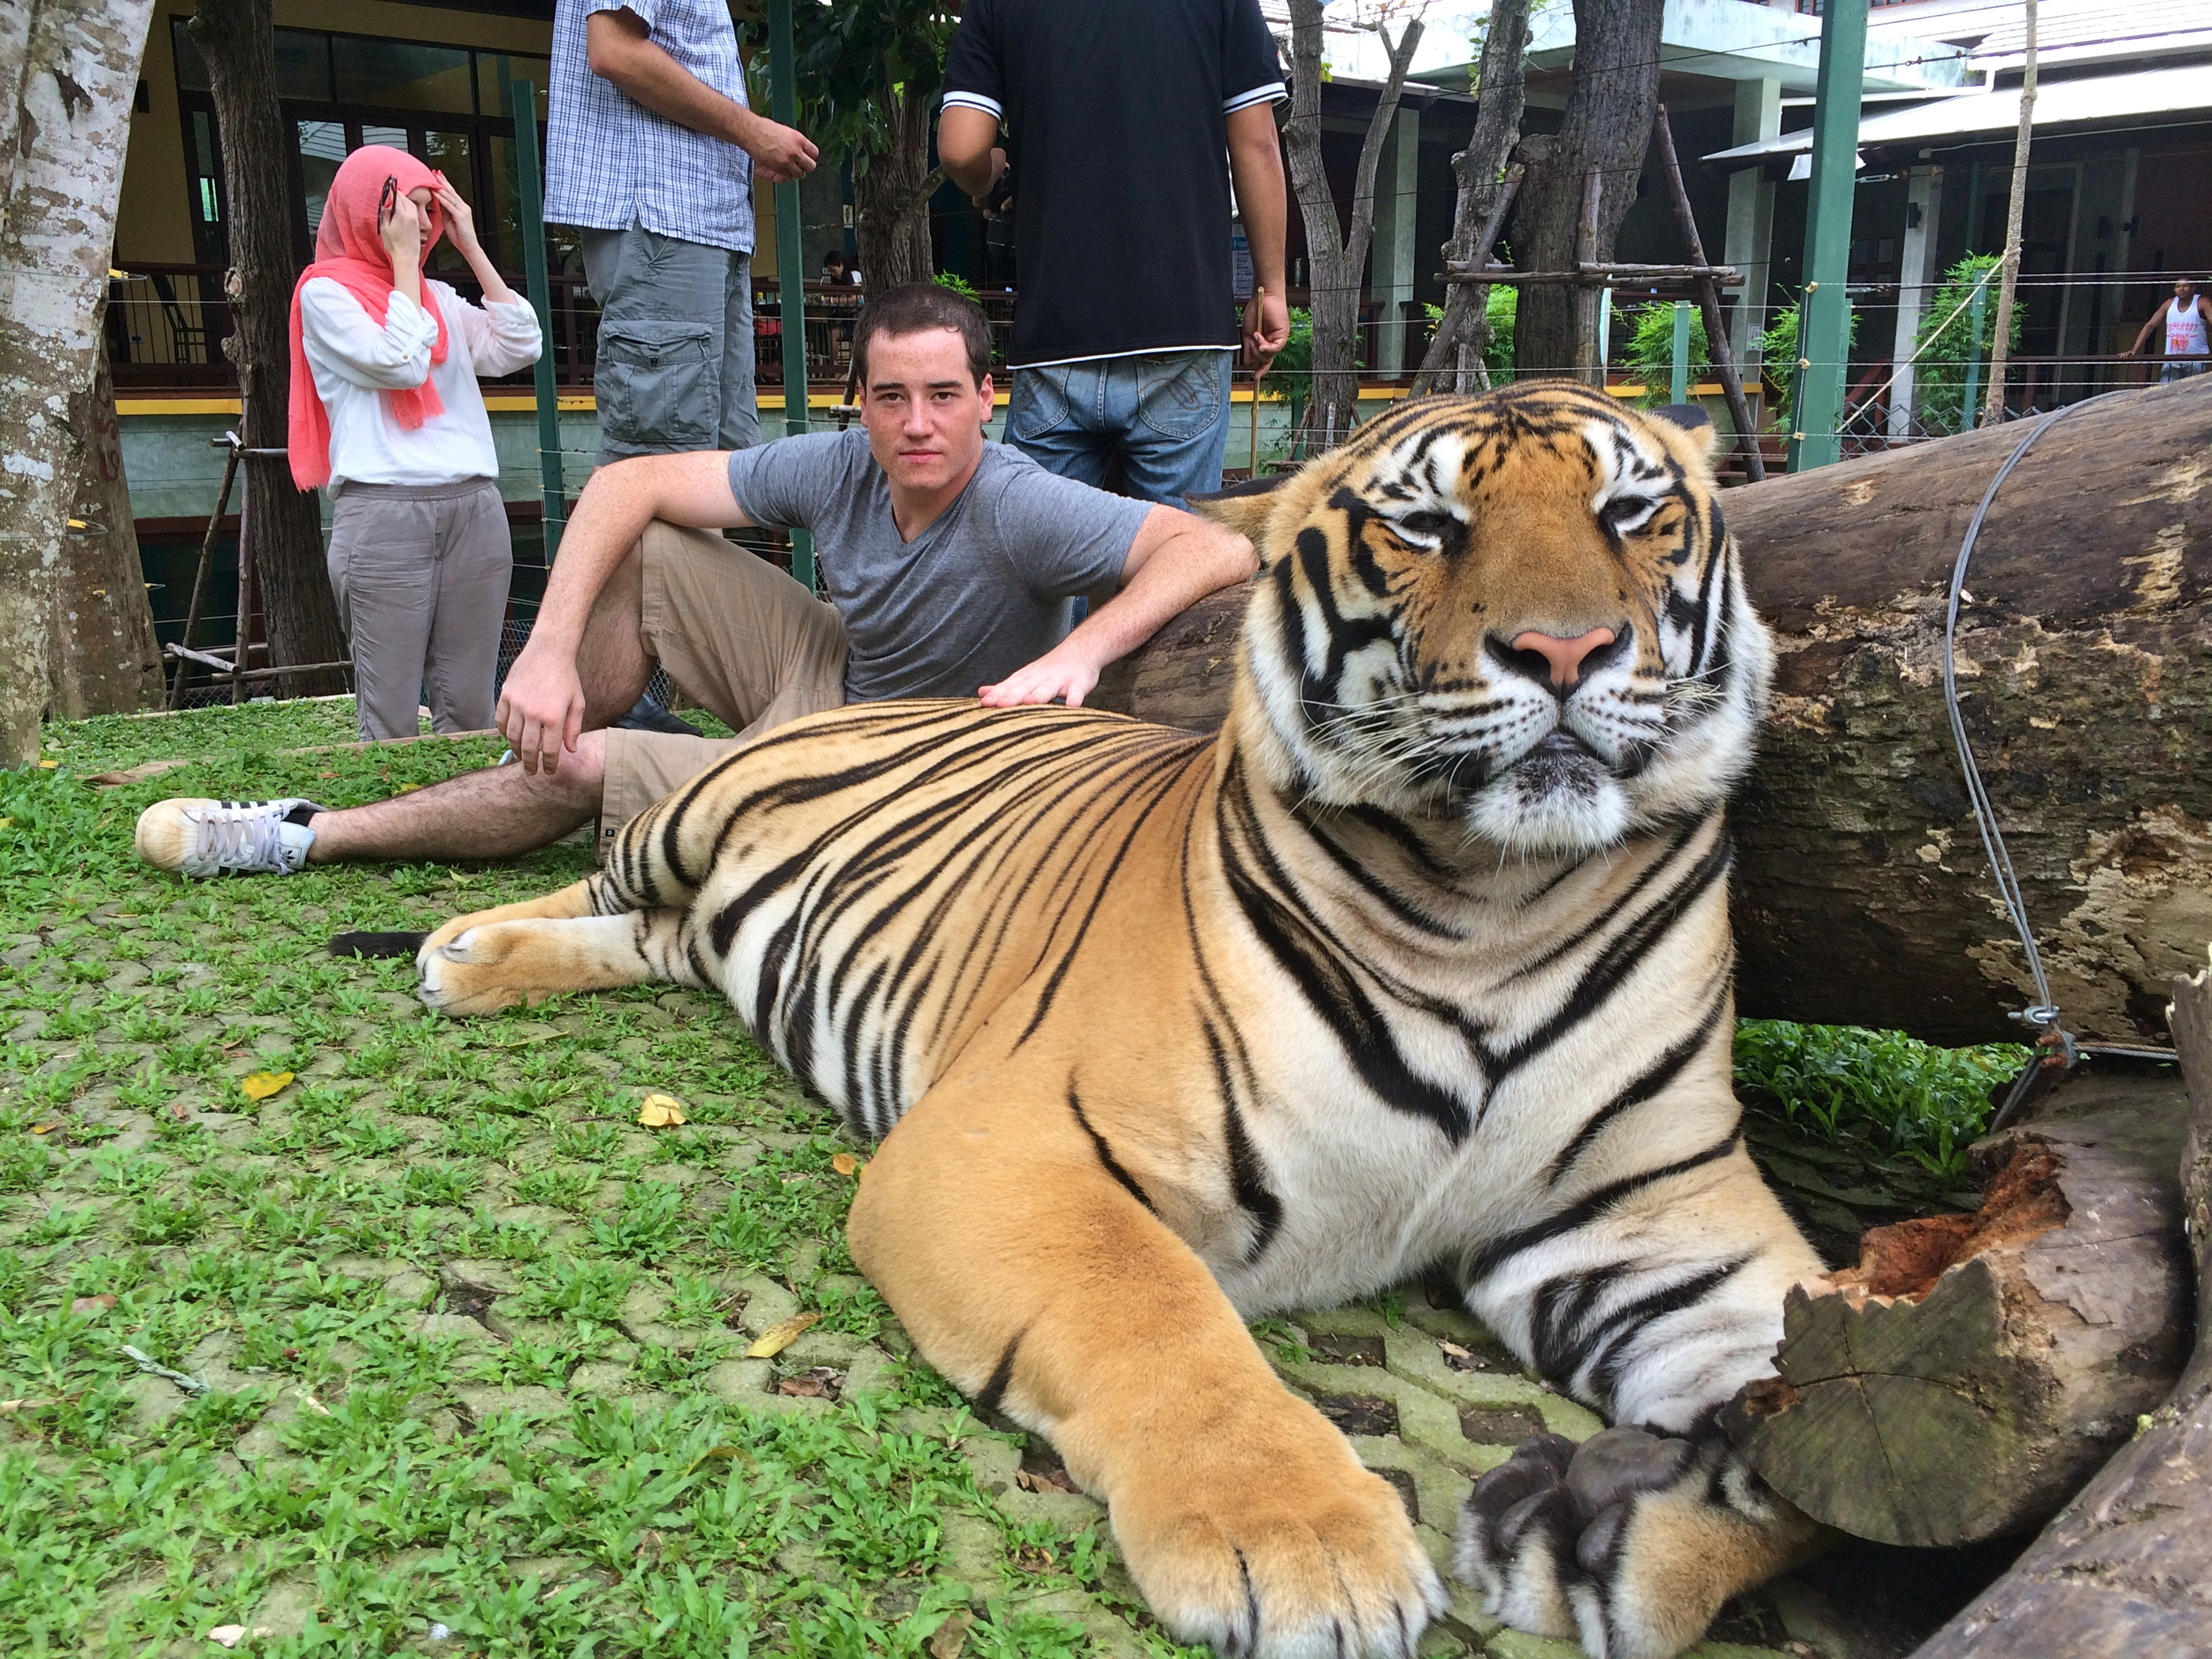 With the Big Cats, Phuket